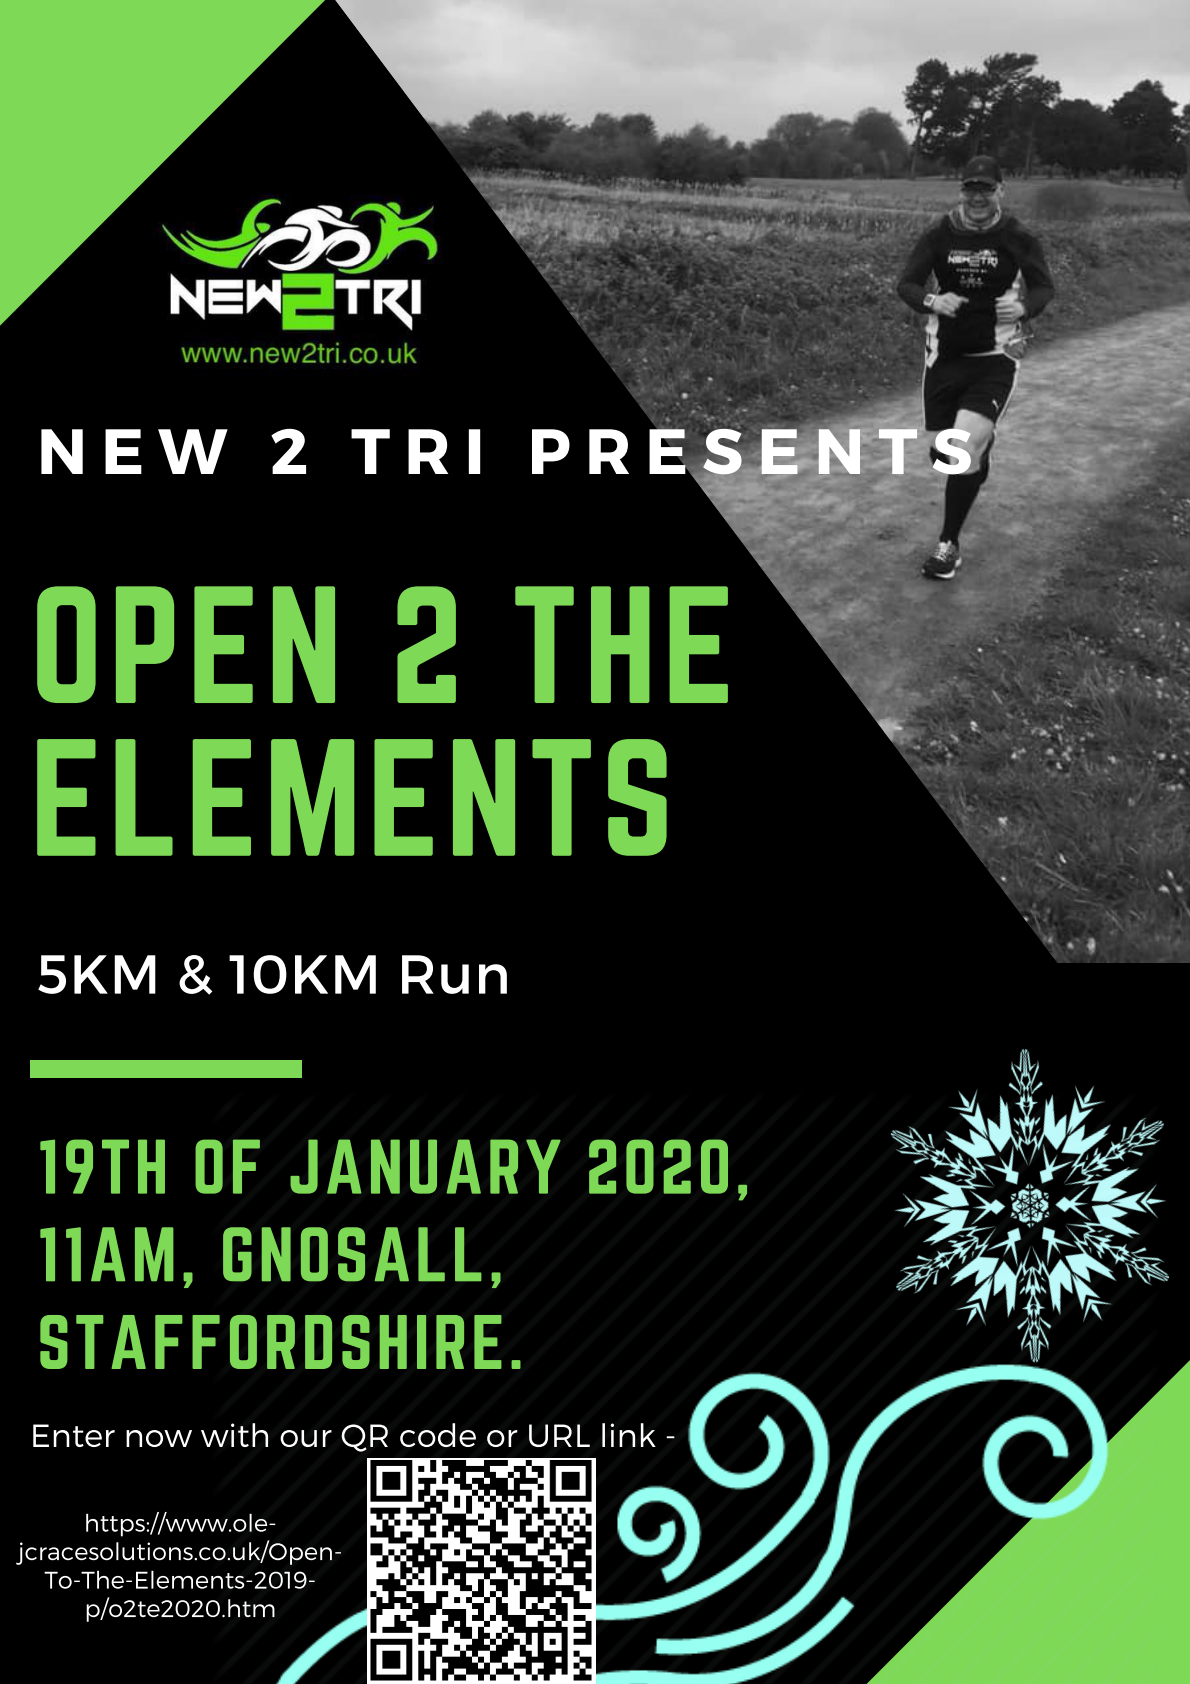 New2tri \u002D Open 2 the Elements 5km and 10km - cover image